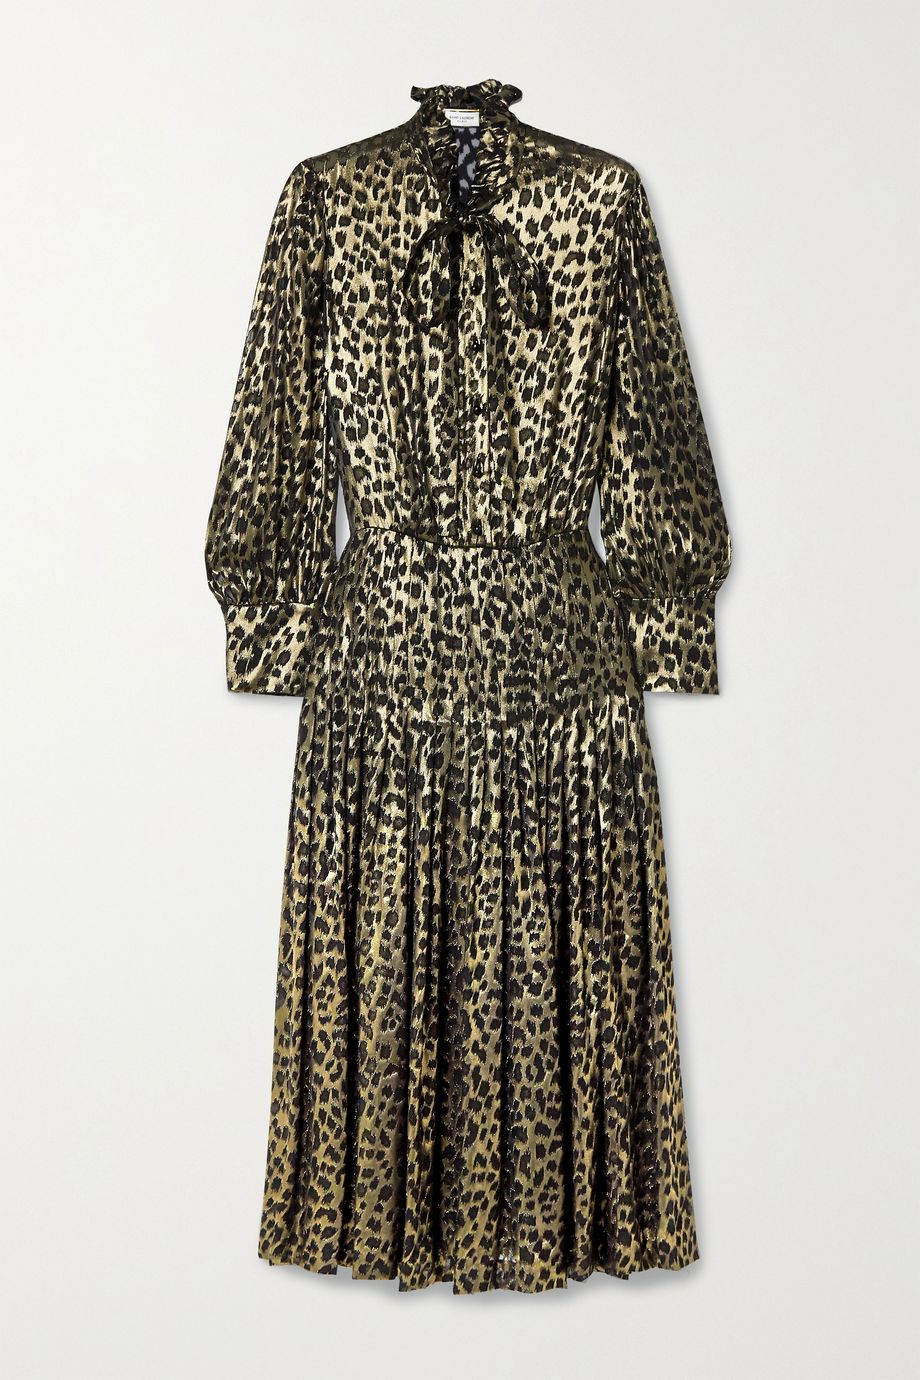 SAINT LAURENT Pussy-bow pleated leopard-print fil coupé silk-blend lamé midi dress